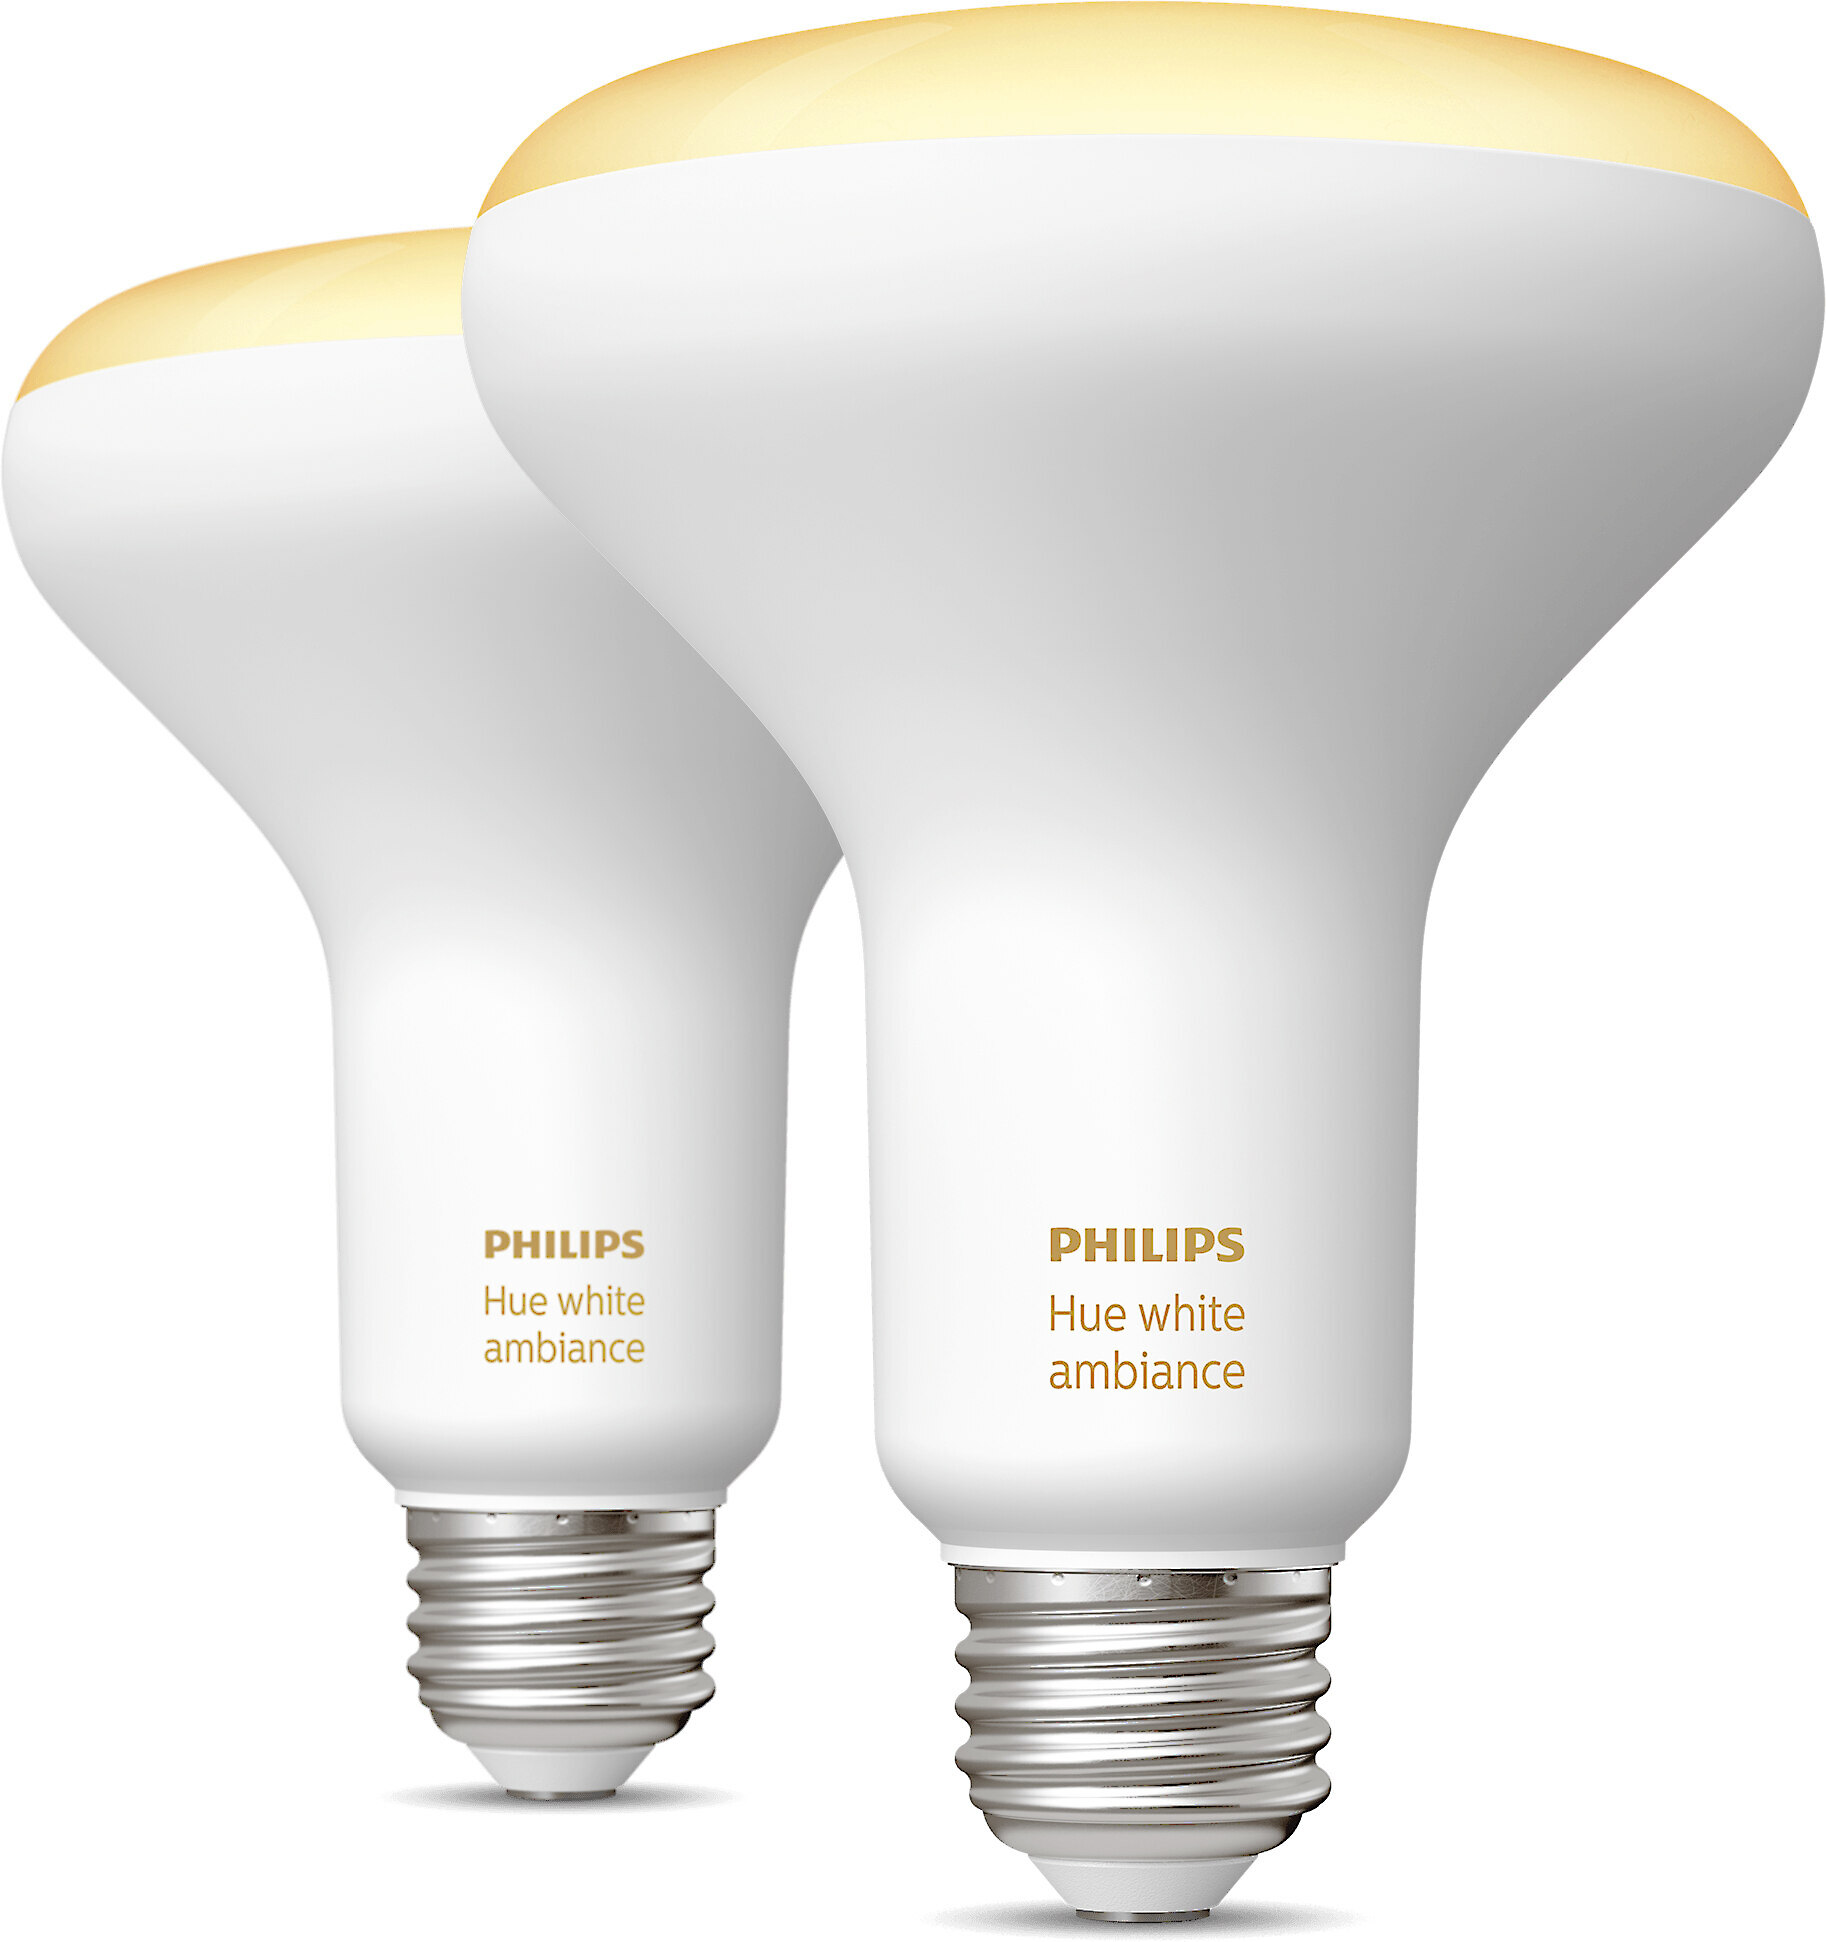 Philips Hue White Ambiance Br30 Bulb 2 Pack Two Led Floodlight Bulbs With Dimmable Shades Of White Light And Bluetooth At Crutchfield